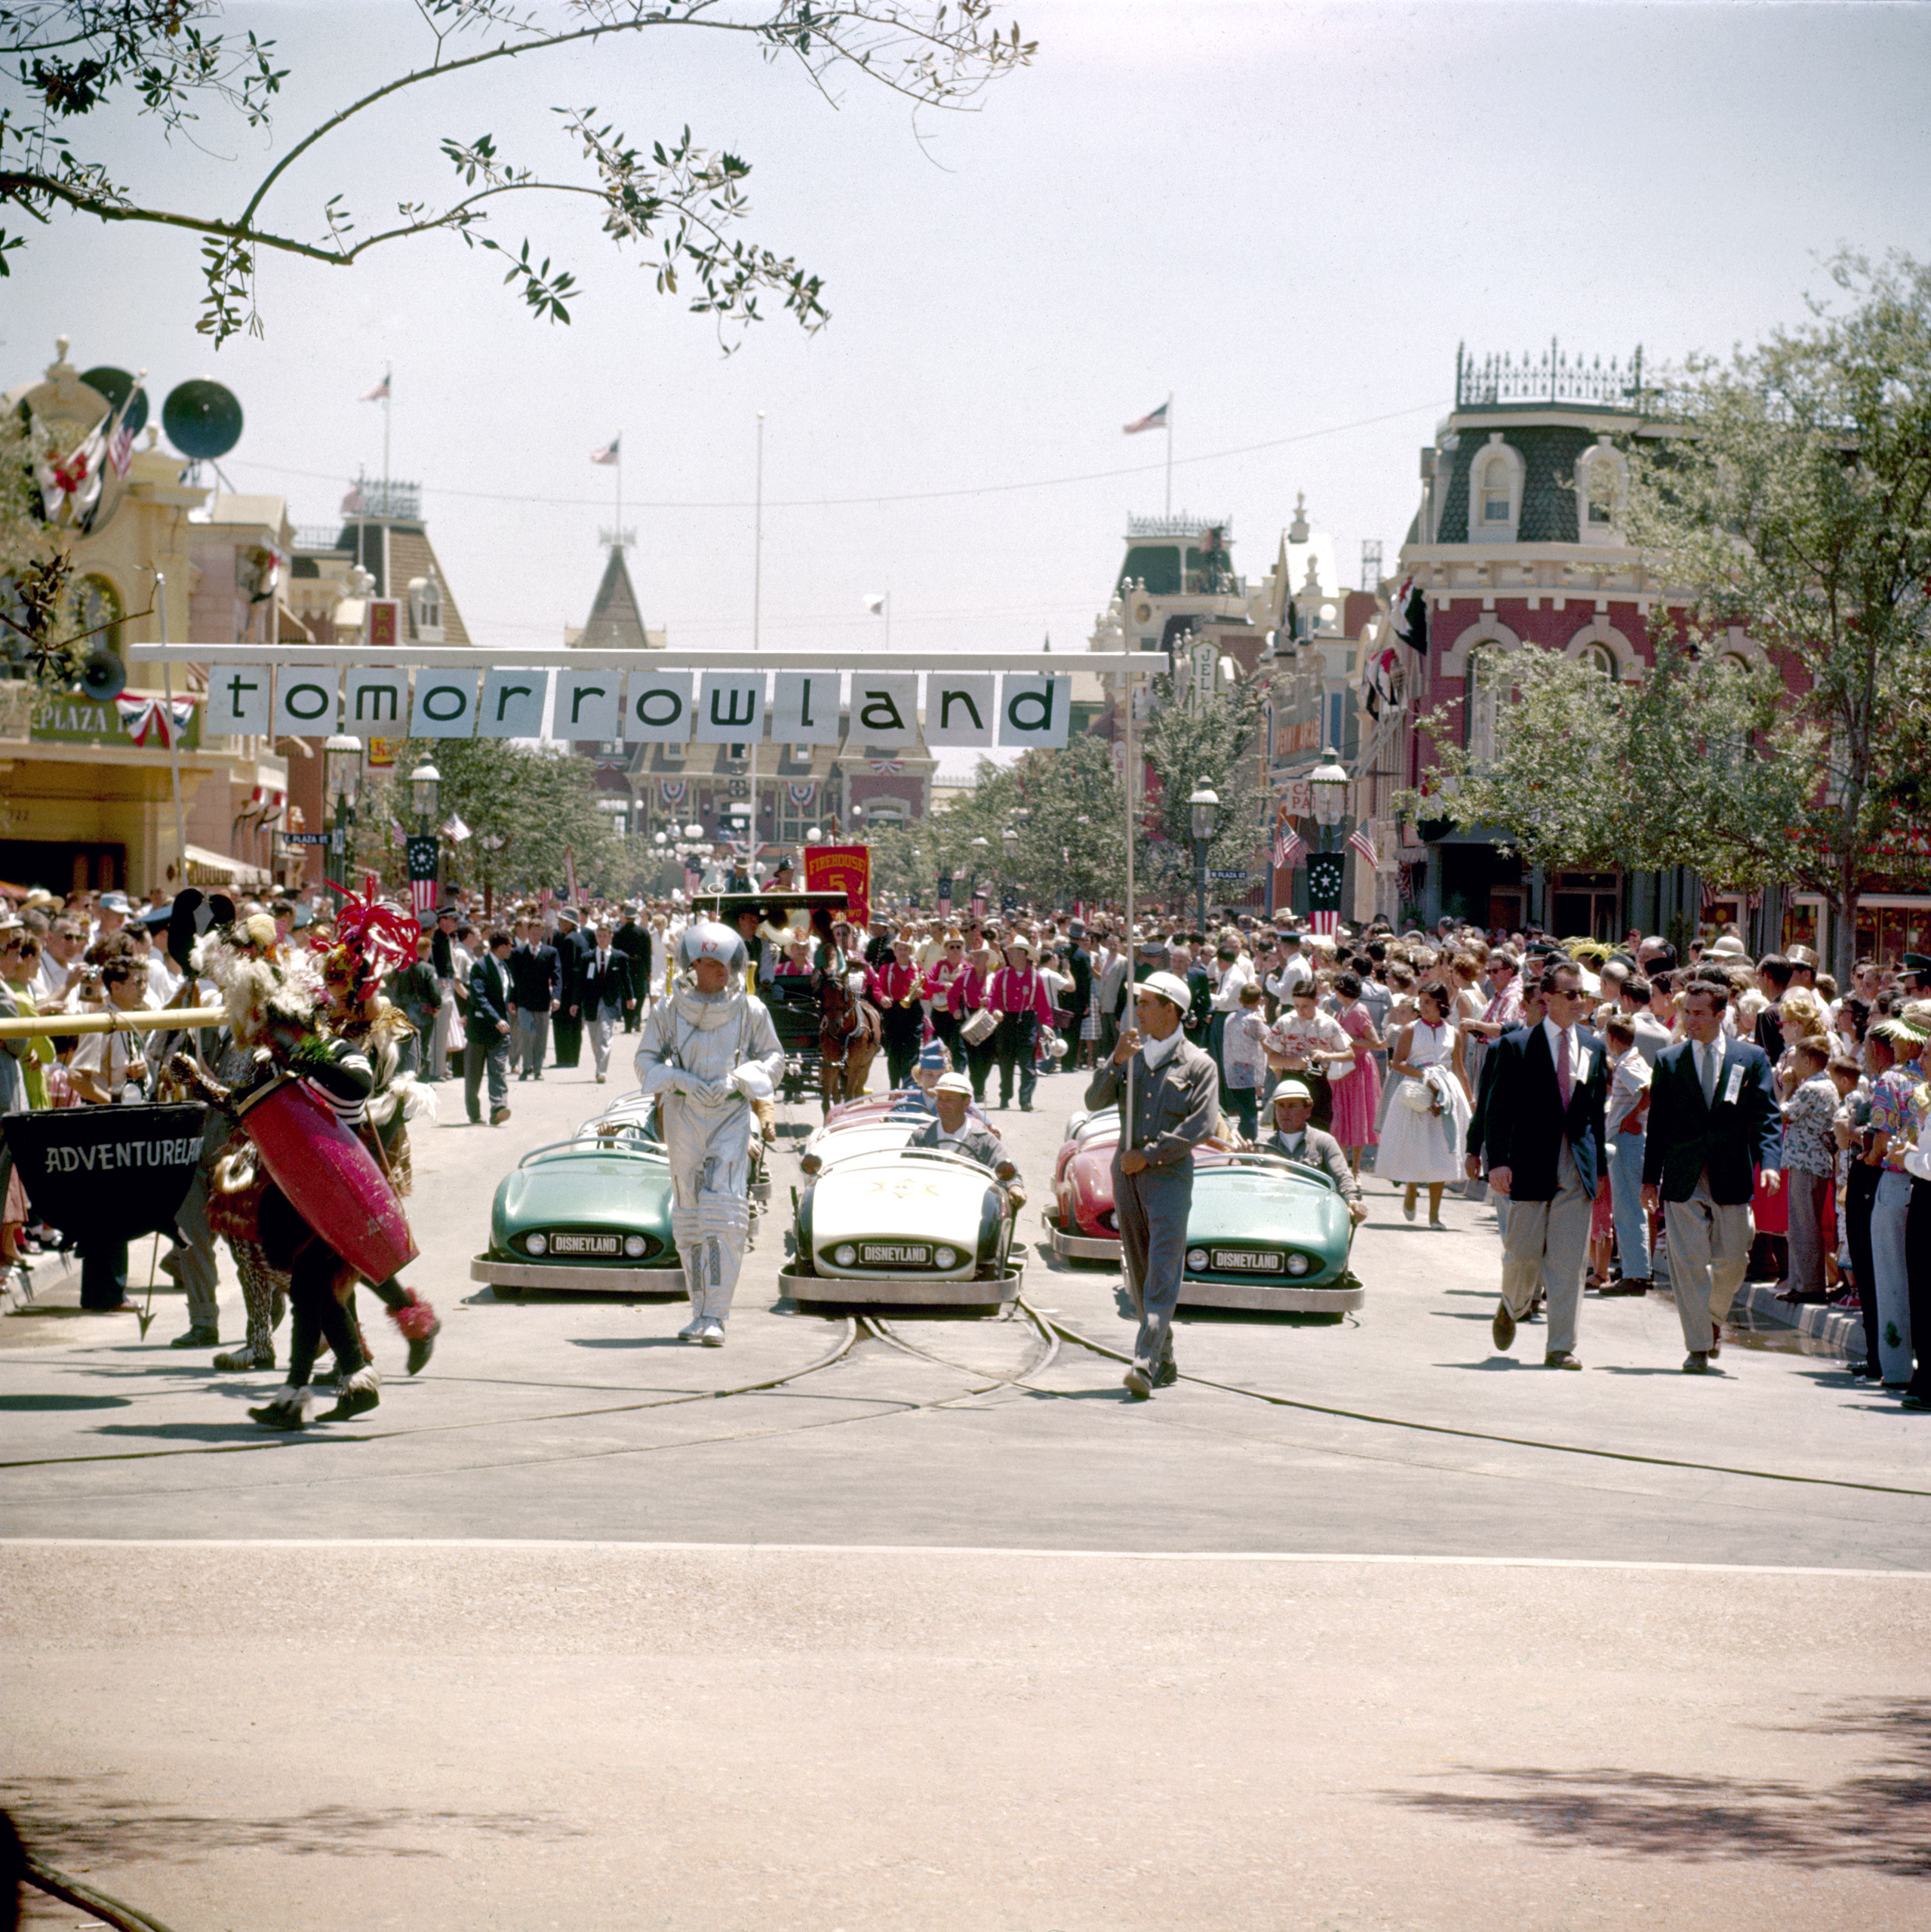 Disneyland Parade done as a preview for national television, 1955.